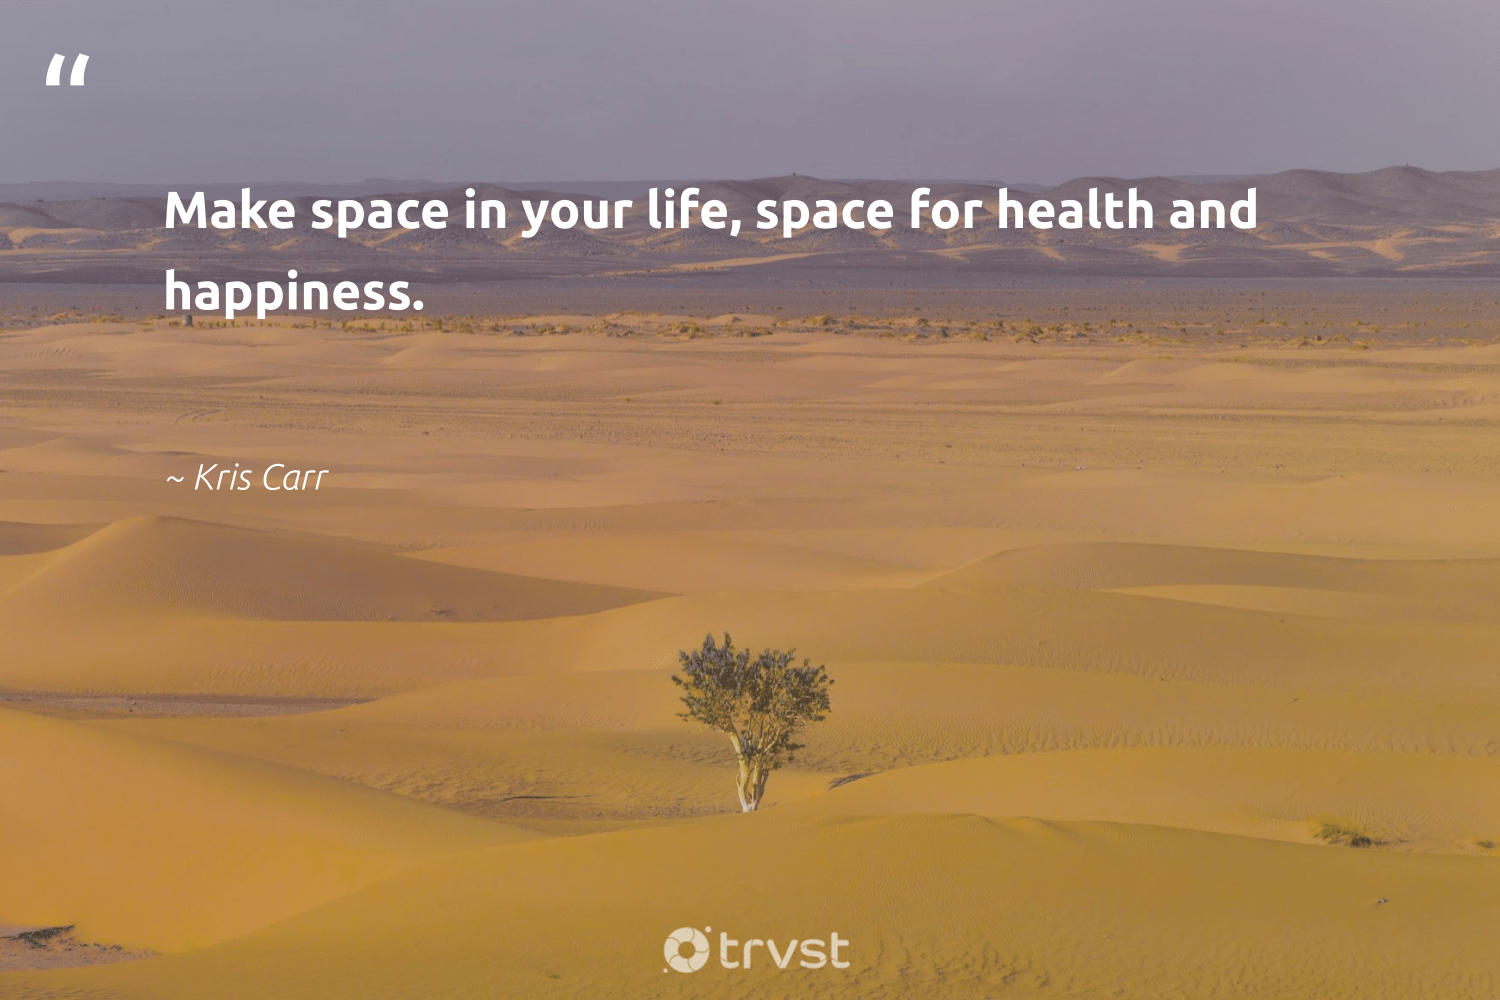 """""""Make space in your life, space for health and happiness.""""  - Kris Carr #trvst #quotes #health #happiness #begreat #takeaction #togetherwecan #dogood #mindset #thinkgreen #changemakers #impact"""